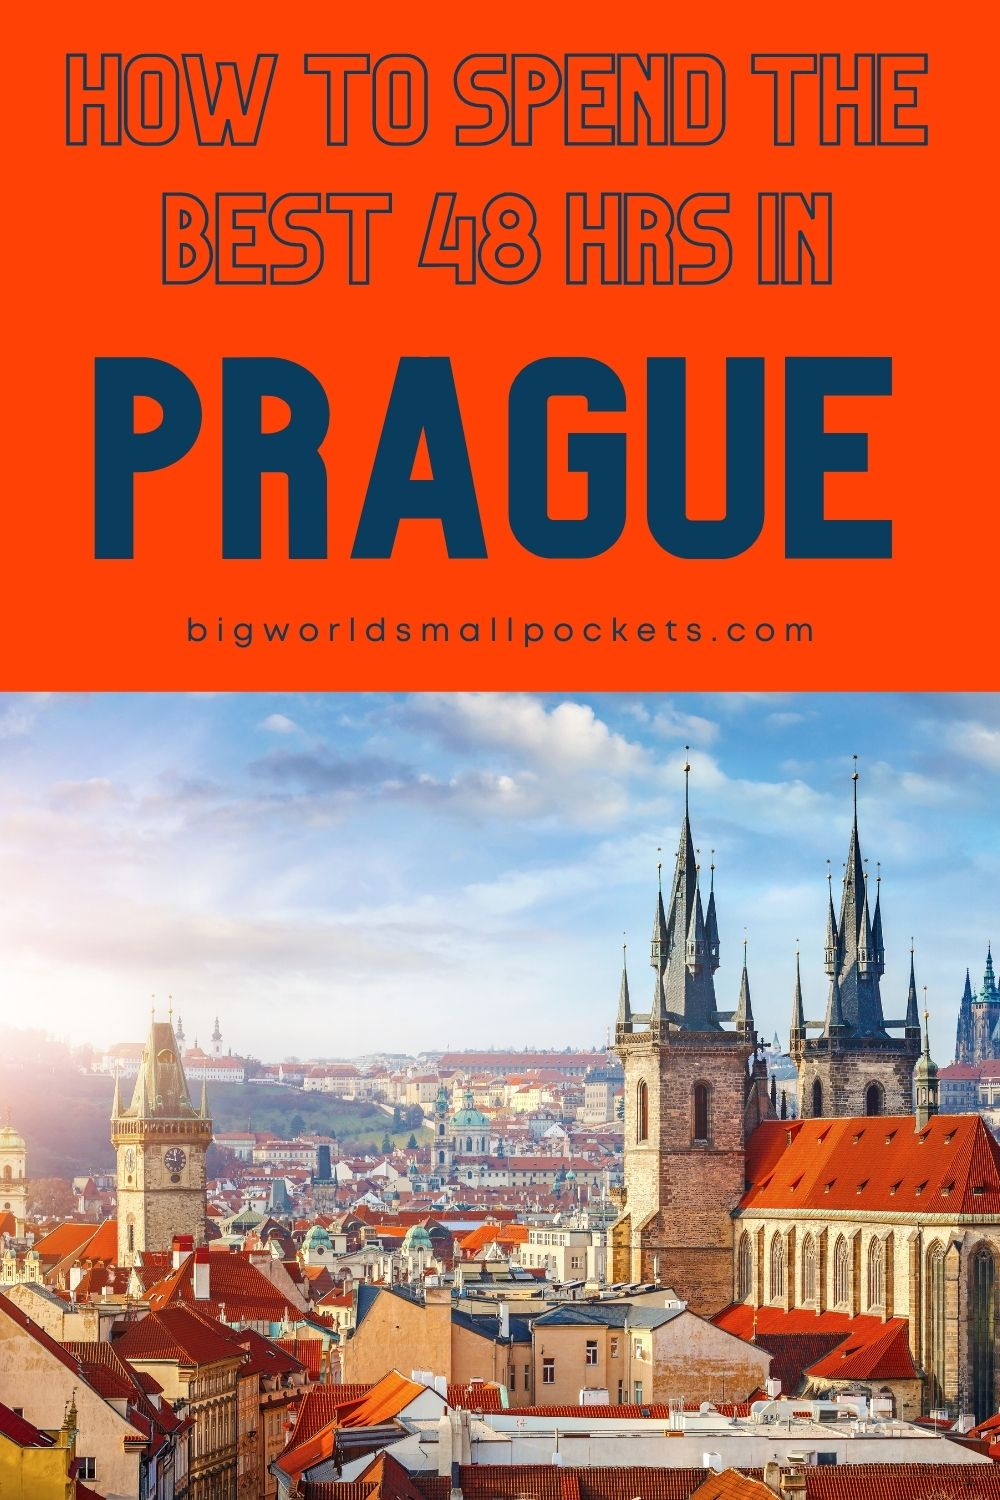 How to Spend the Best 48 Hours in Prague